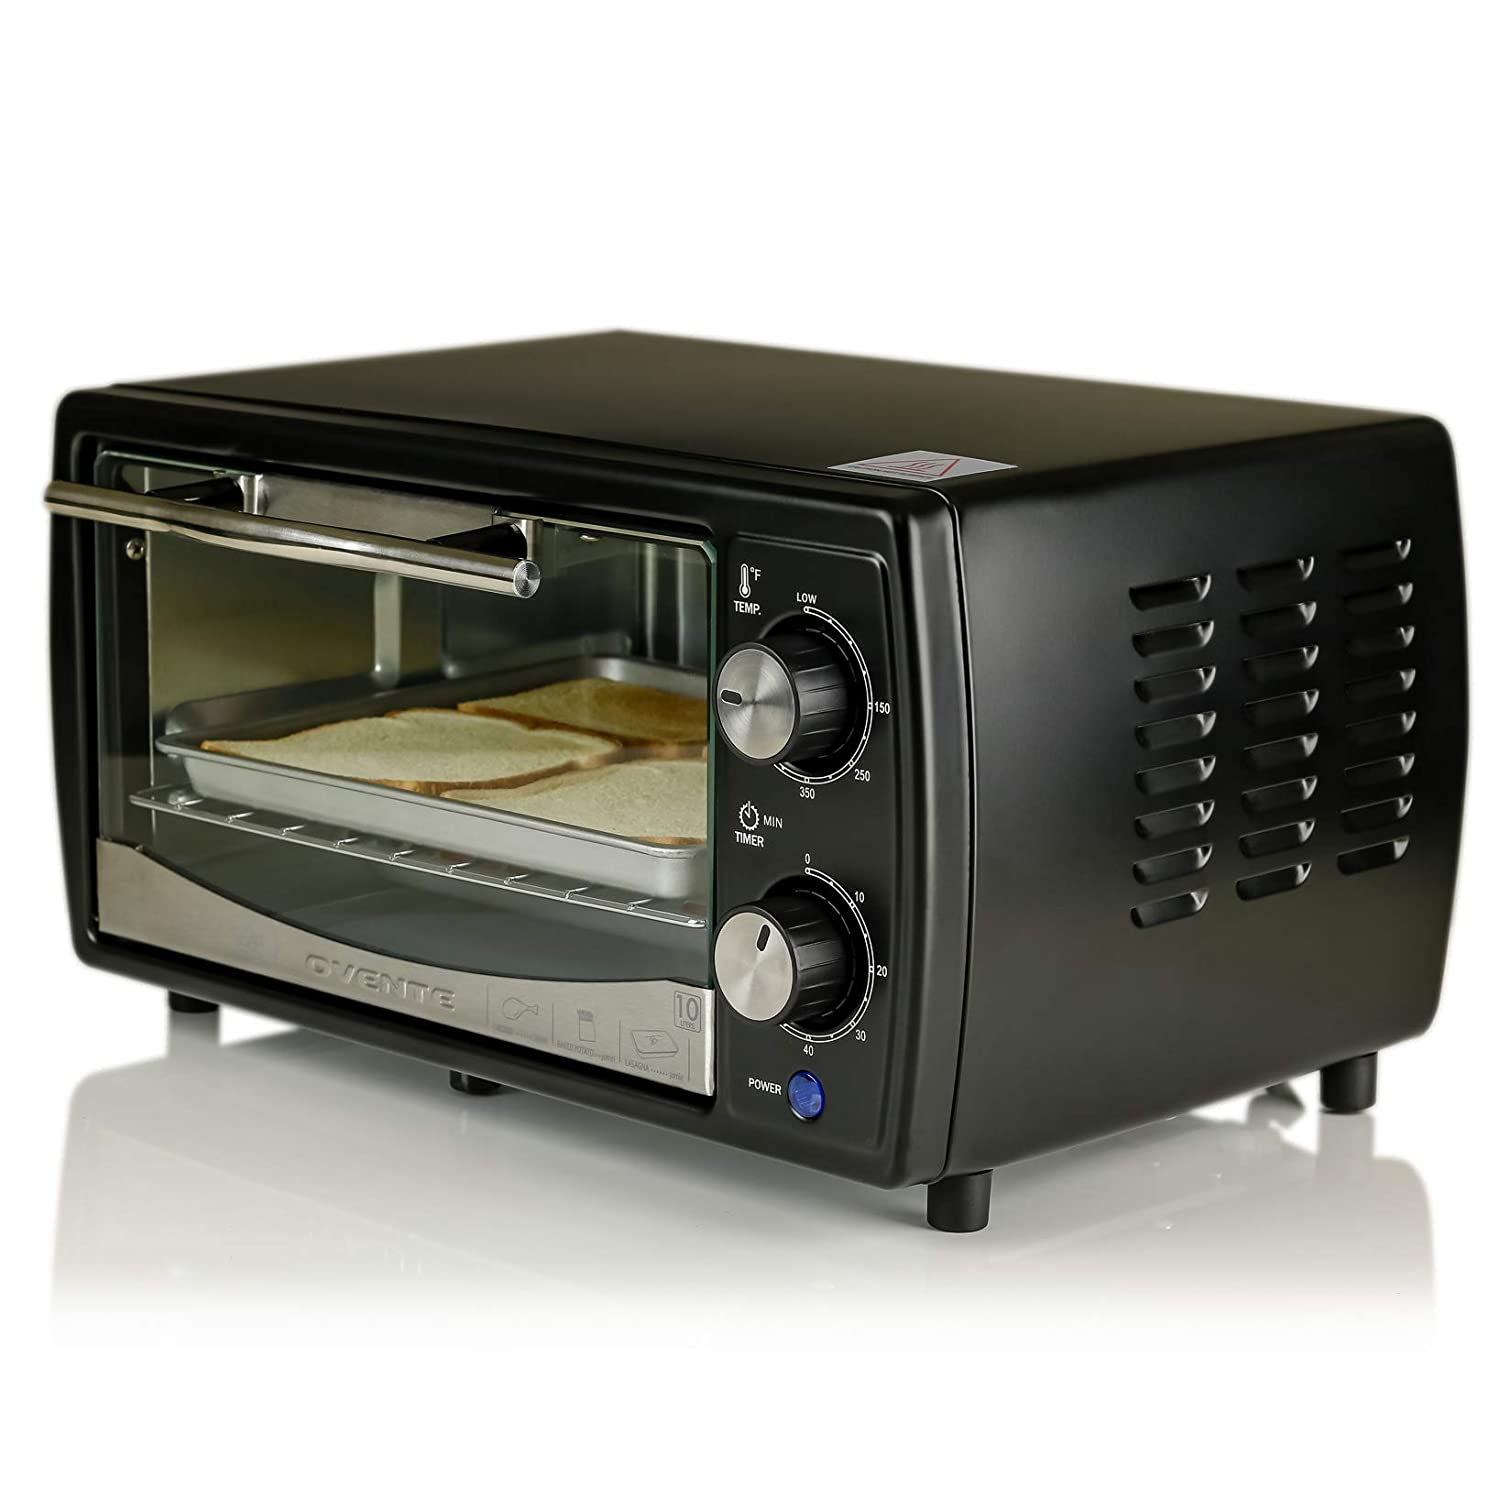 Ovente Electric Toaster Oven with Timer Knob and Tempered Glass Door, 700-Watts, 9.5 Liter, Cool-Touch Handle, Includes LED Light, Food Tray, and Grill Rack, Black (TO6895B)